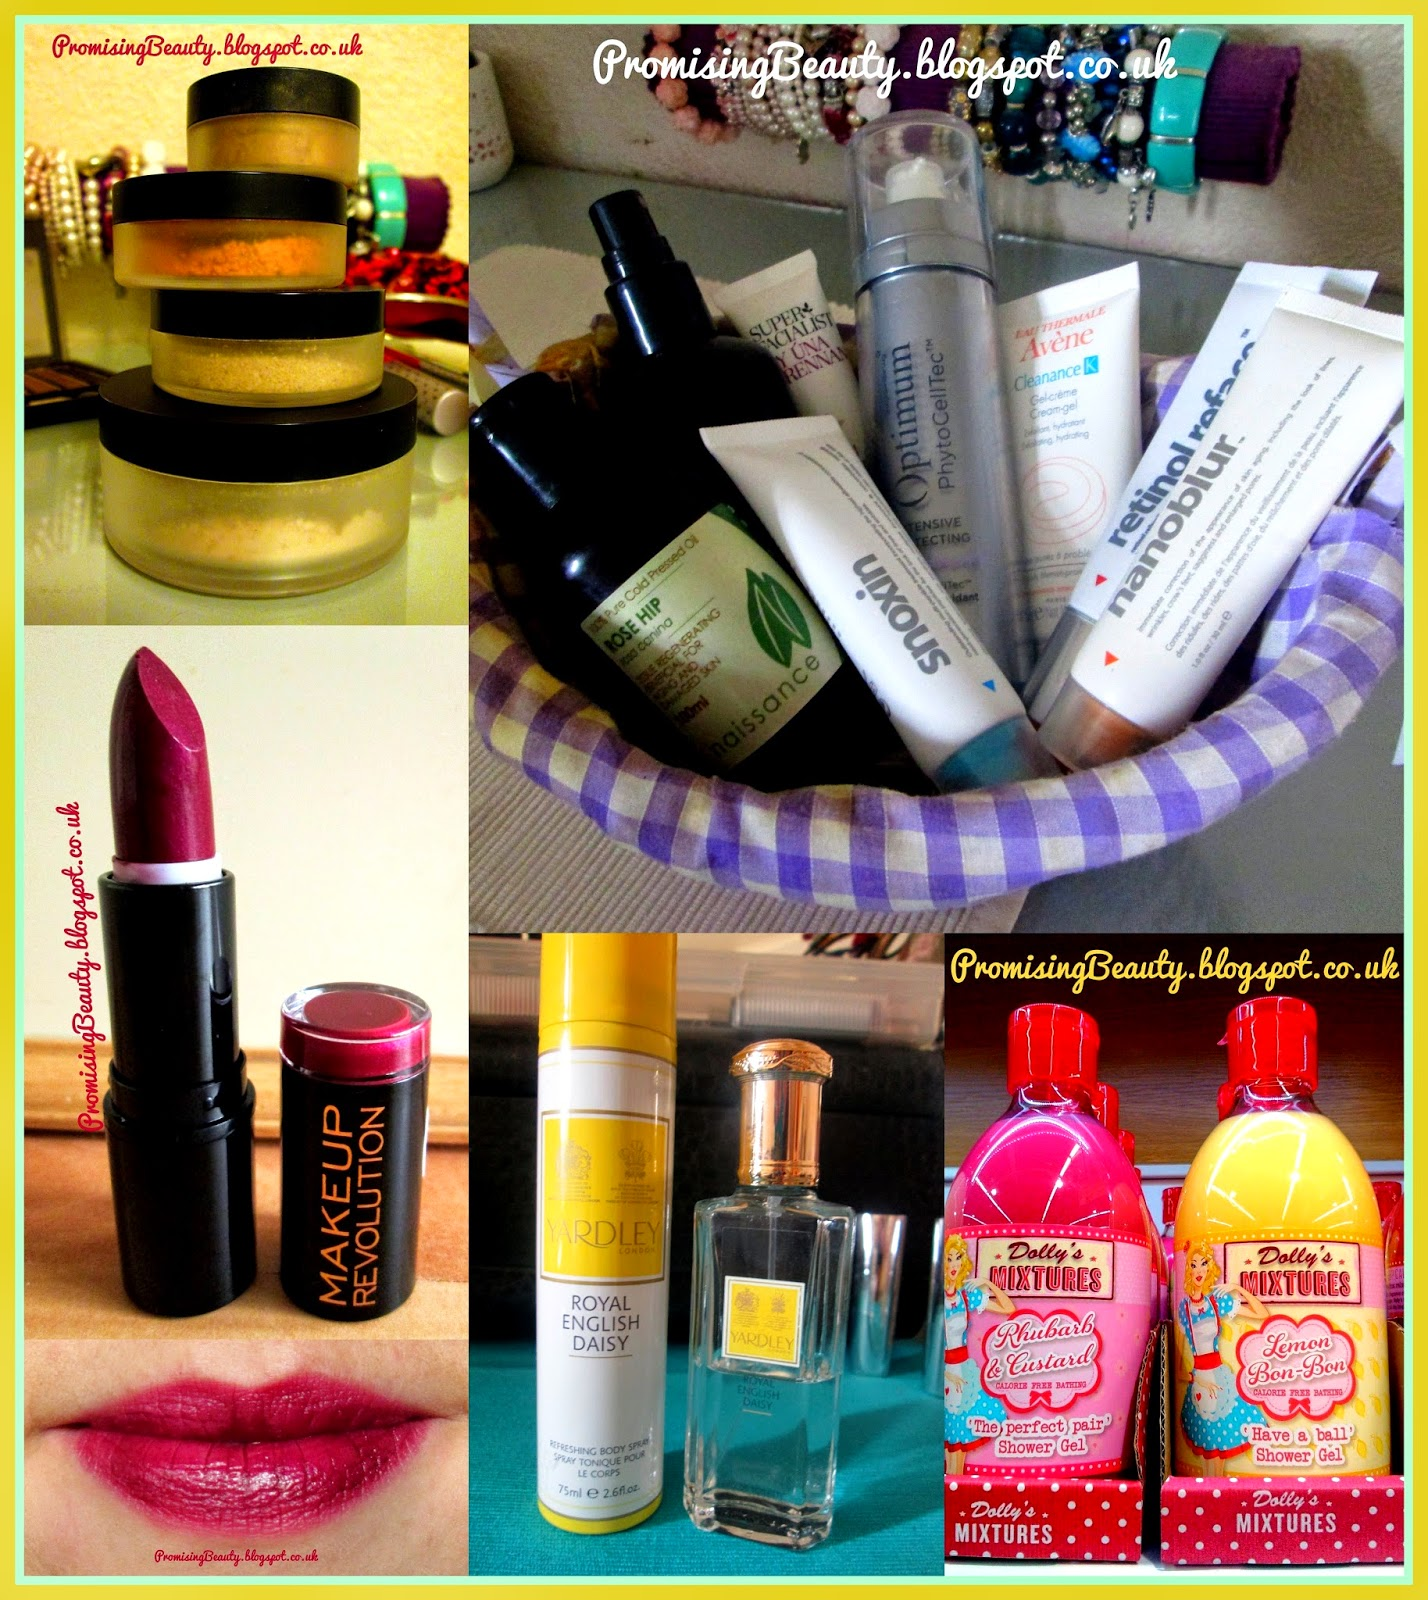 Montage of beauty products, indeed labs, Lily lolo mineral make-up, make-up revolution deep plum lipstick, rebel with a cause, Yardleys royal daisy prfume and body spray, dolly's mixtures bubble bath and shower gel